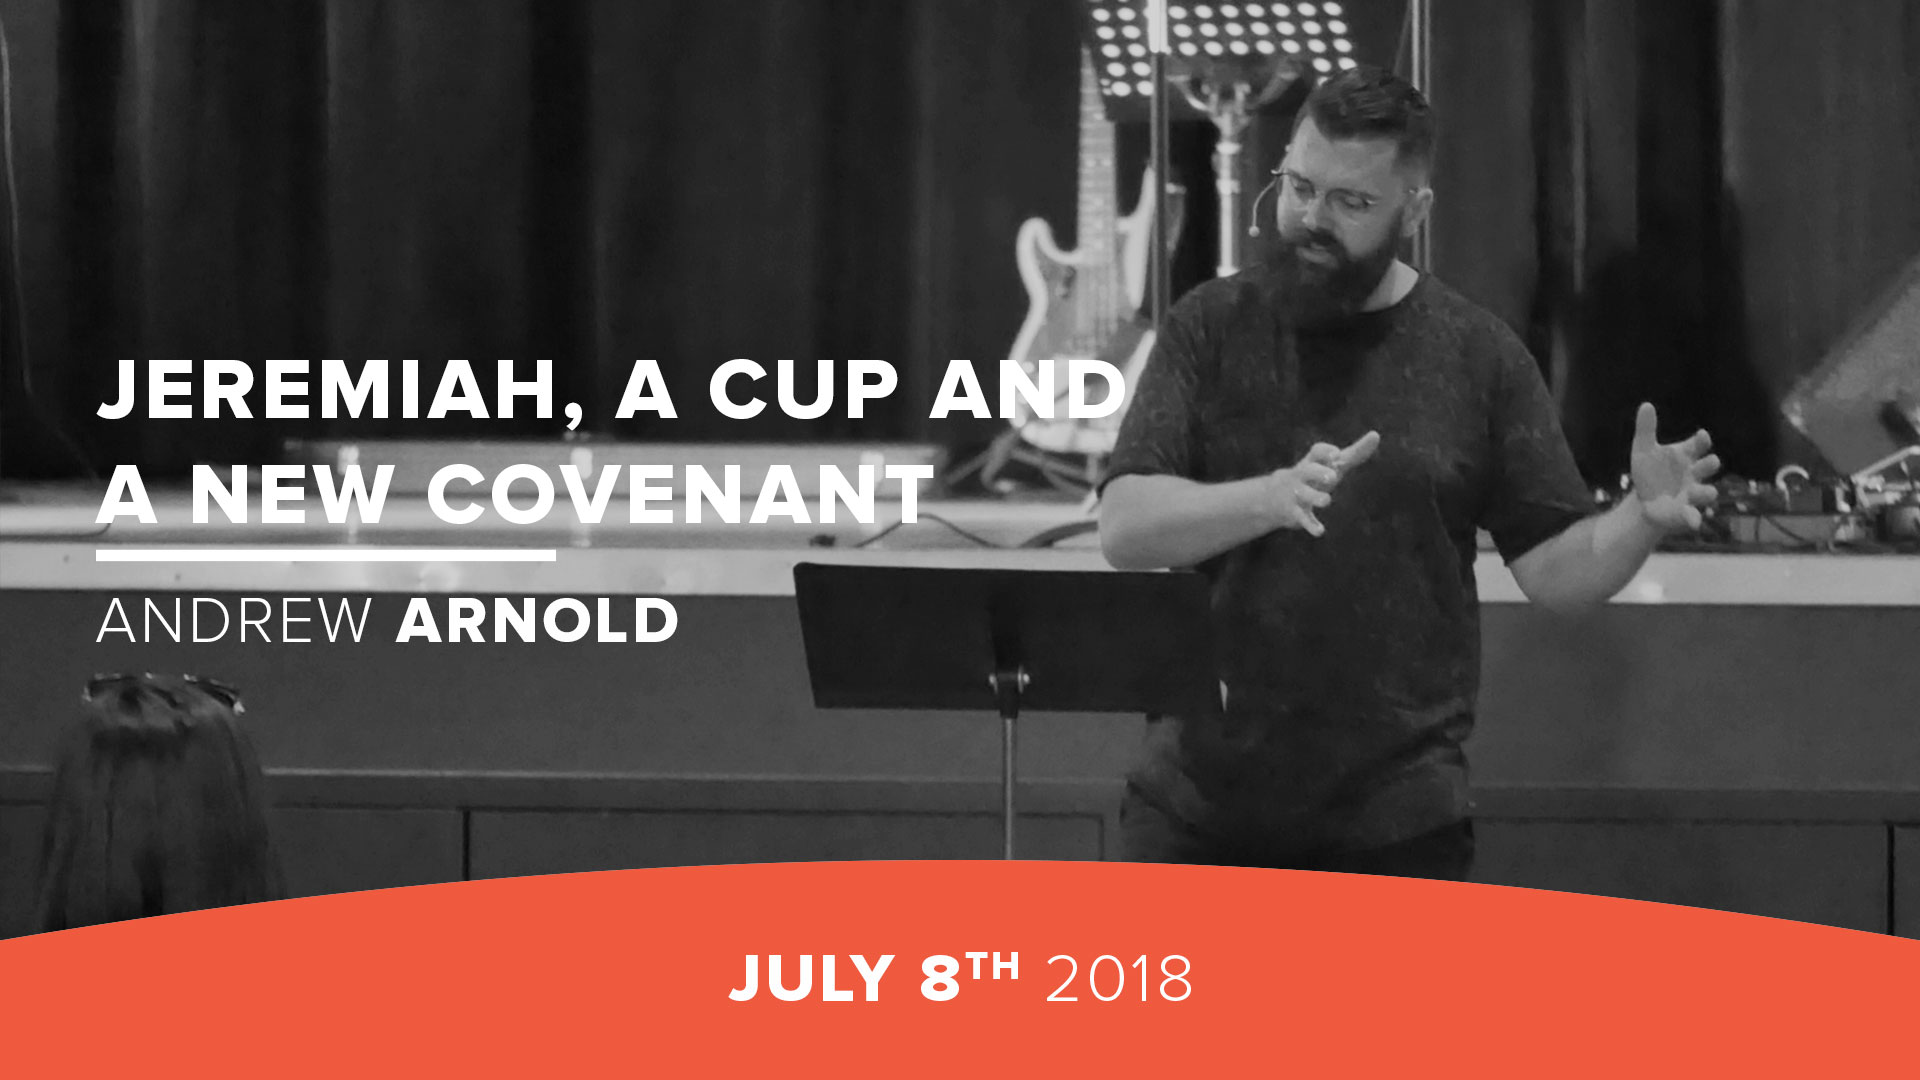 Jeremiah, a Cup and  a New Covenant